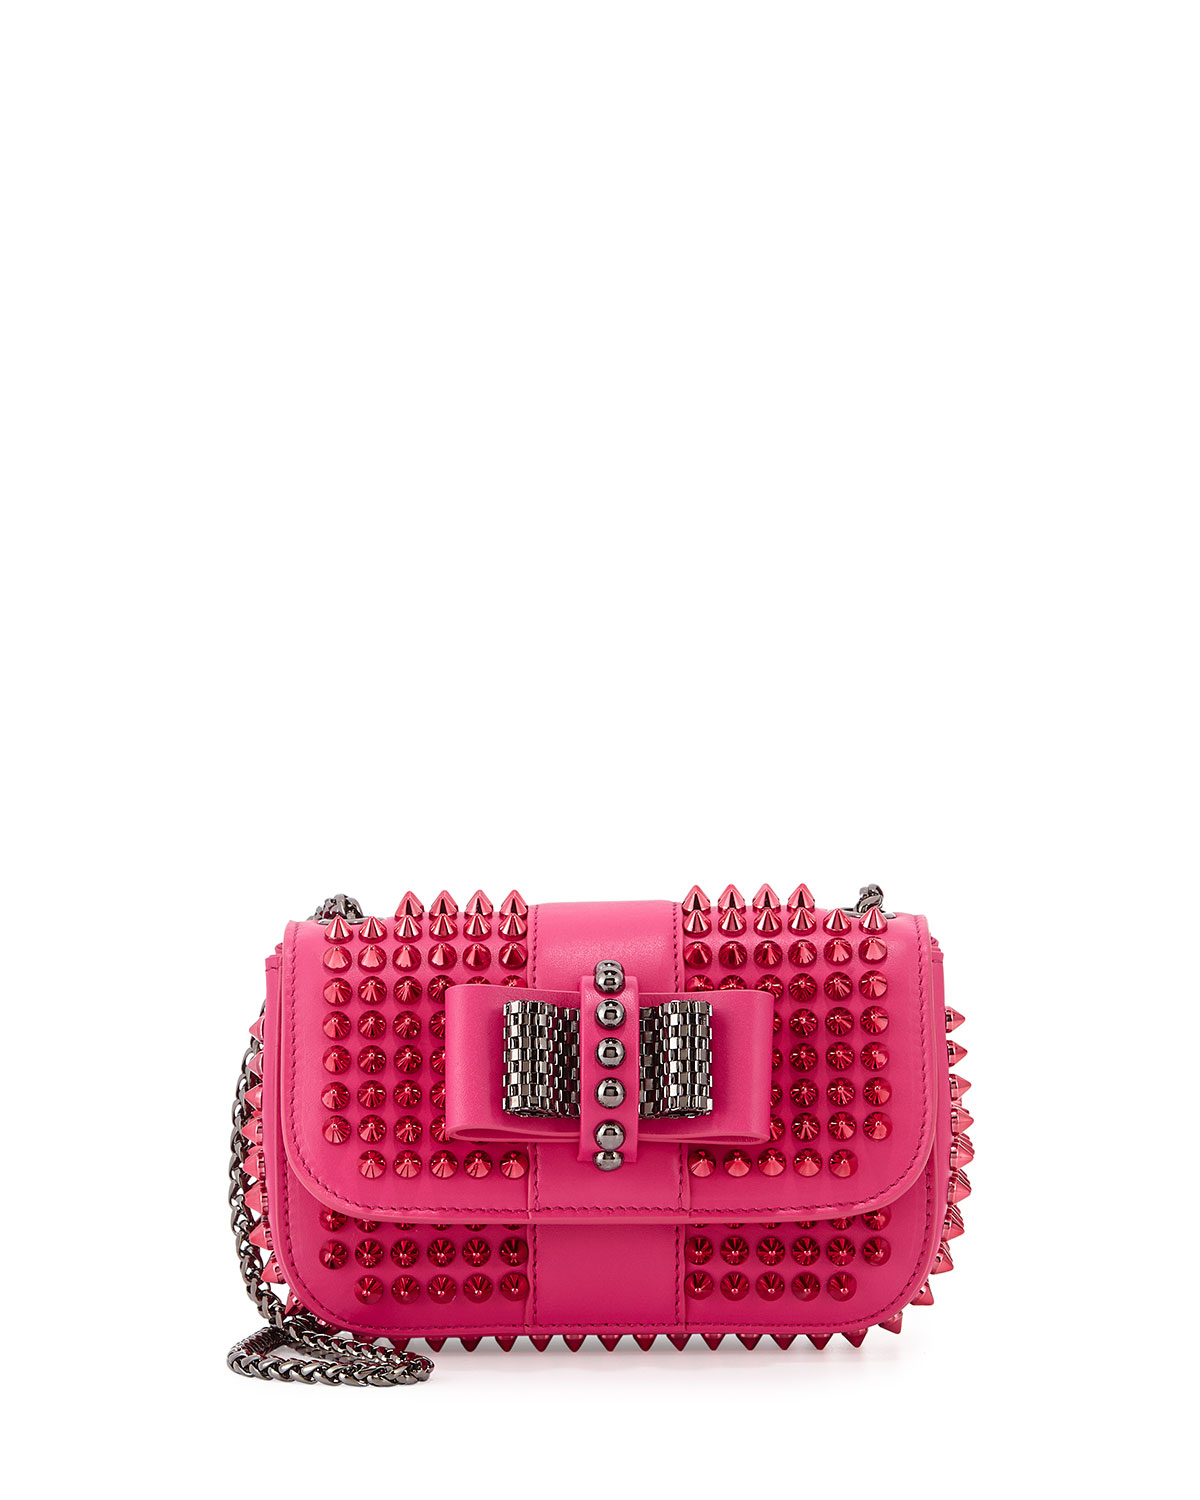 b0645cca2c5 Christian Louboutin Sweet Charity Small Spiked Crossbody Bag in Pink ...